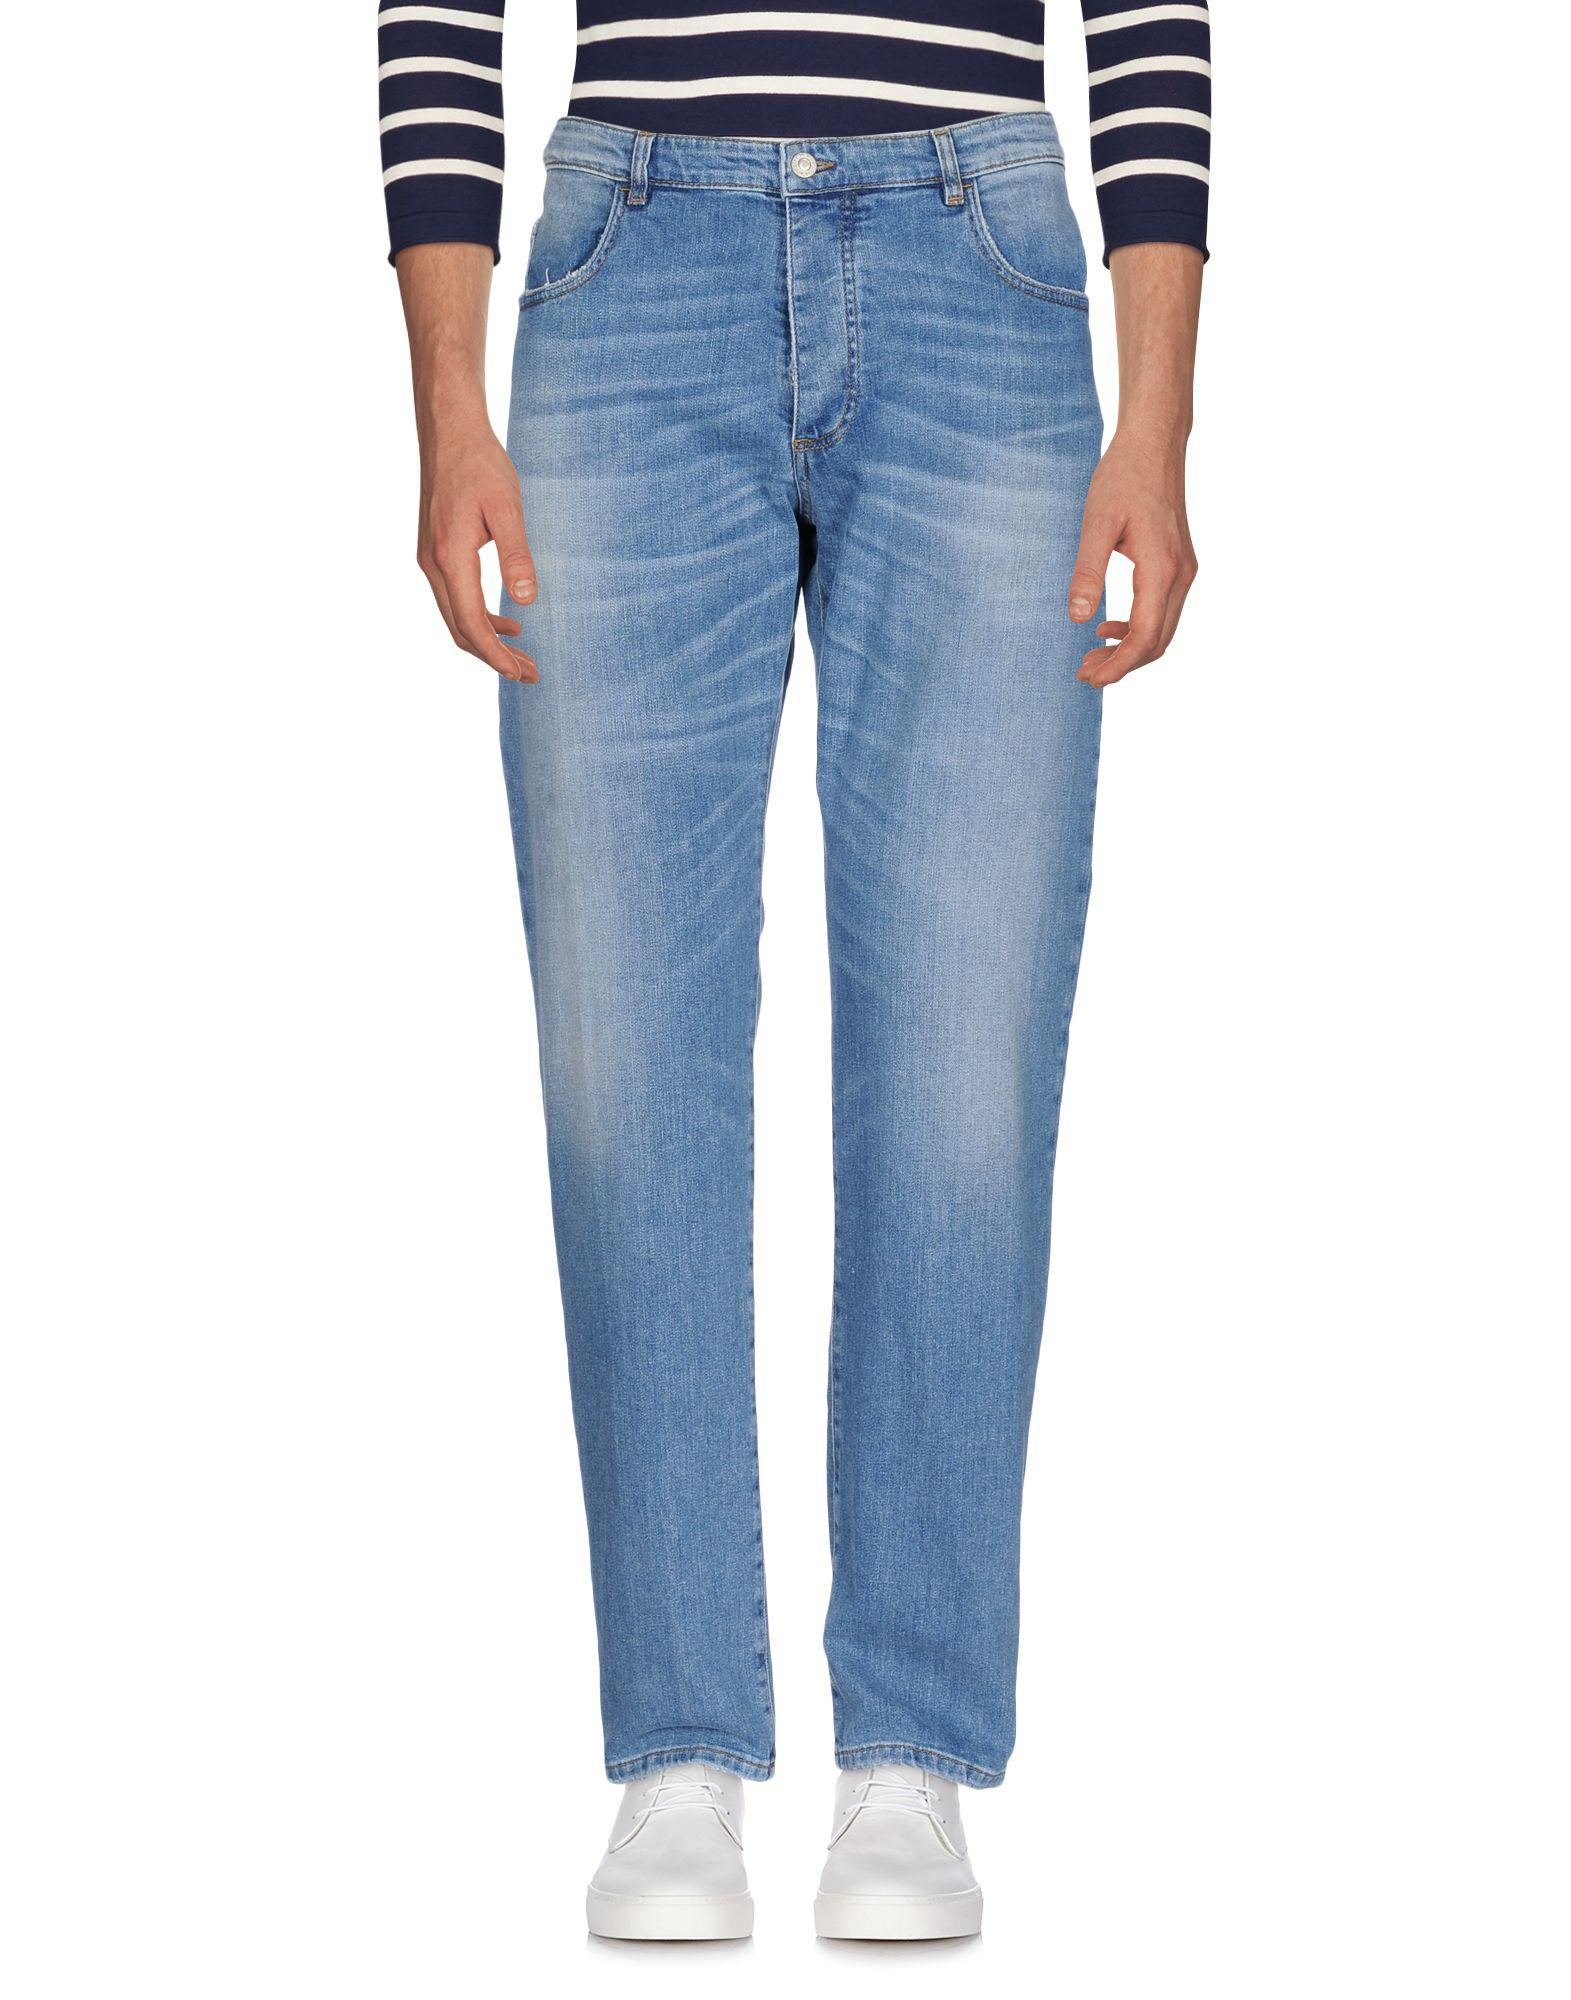 DENIM - Denim trousers Officina 36 Free Shipping Latest N8NG8THh